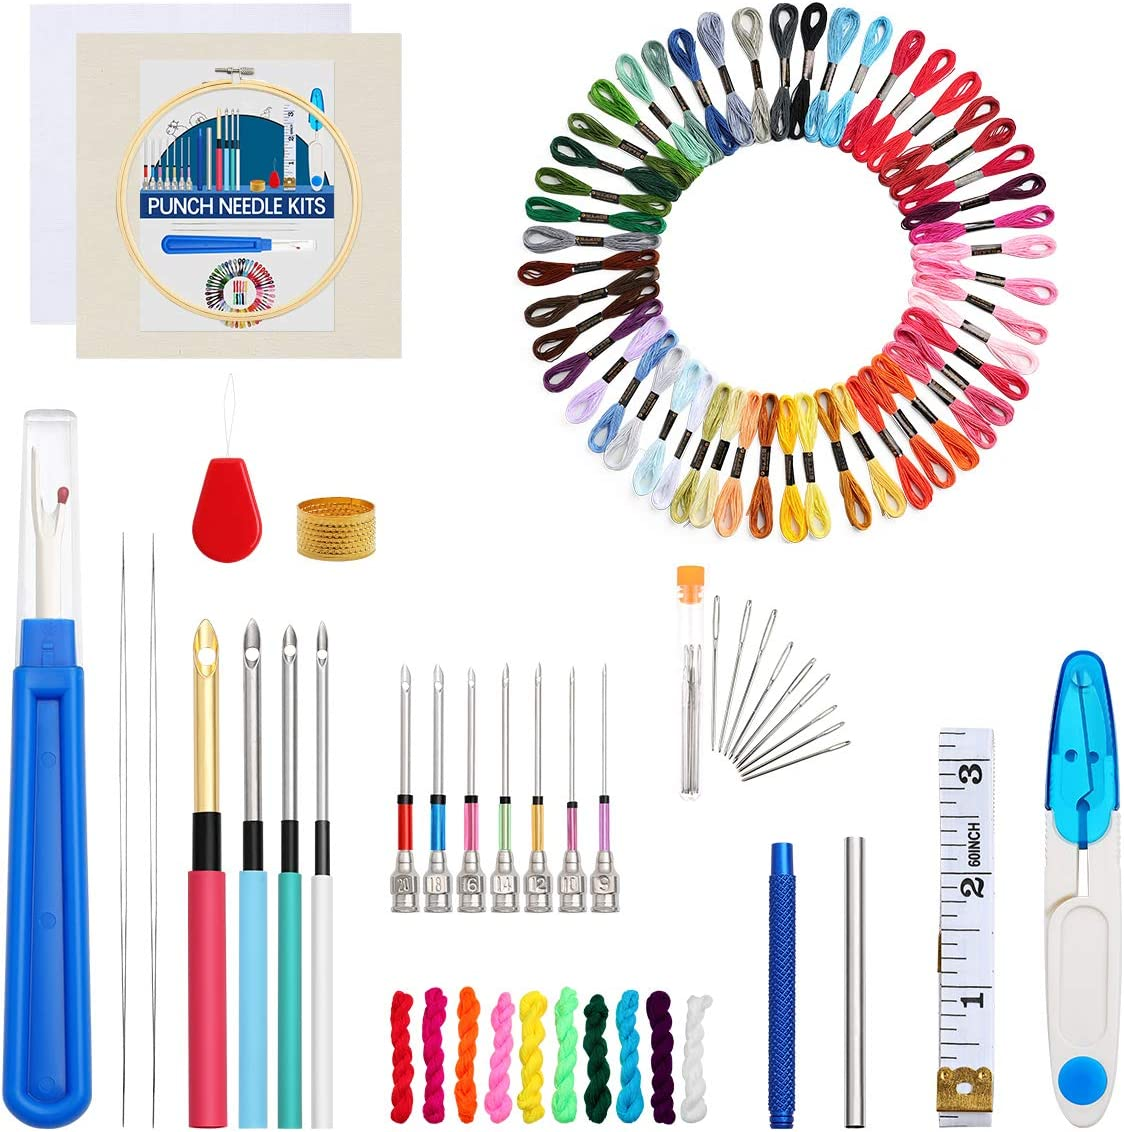 Punch Needle Set Looen 93pcs Punch Needle Embroidery Kit with Embroidery Tools and Instructions Needle Punch Kits for Beginners